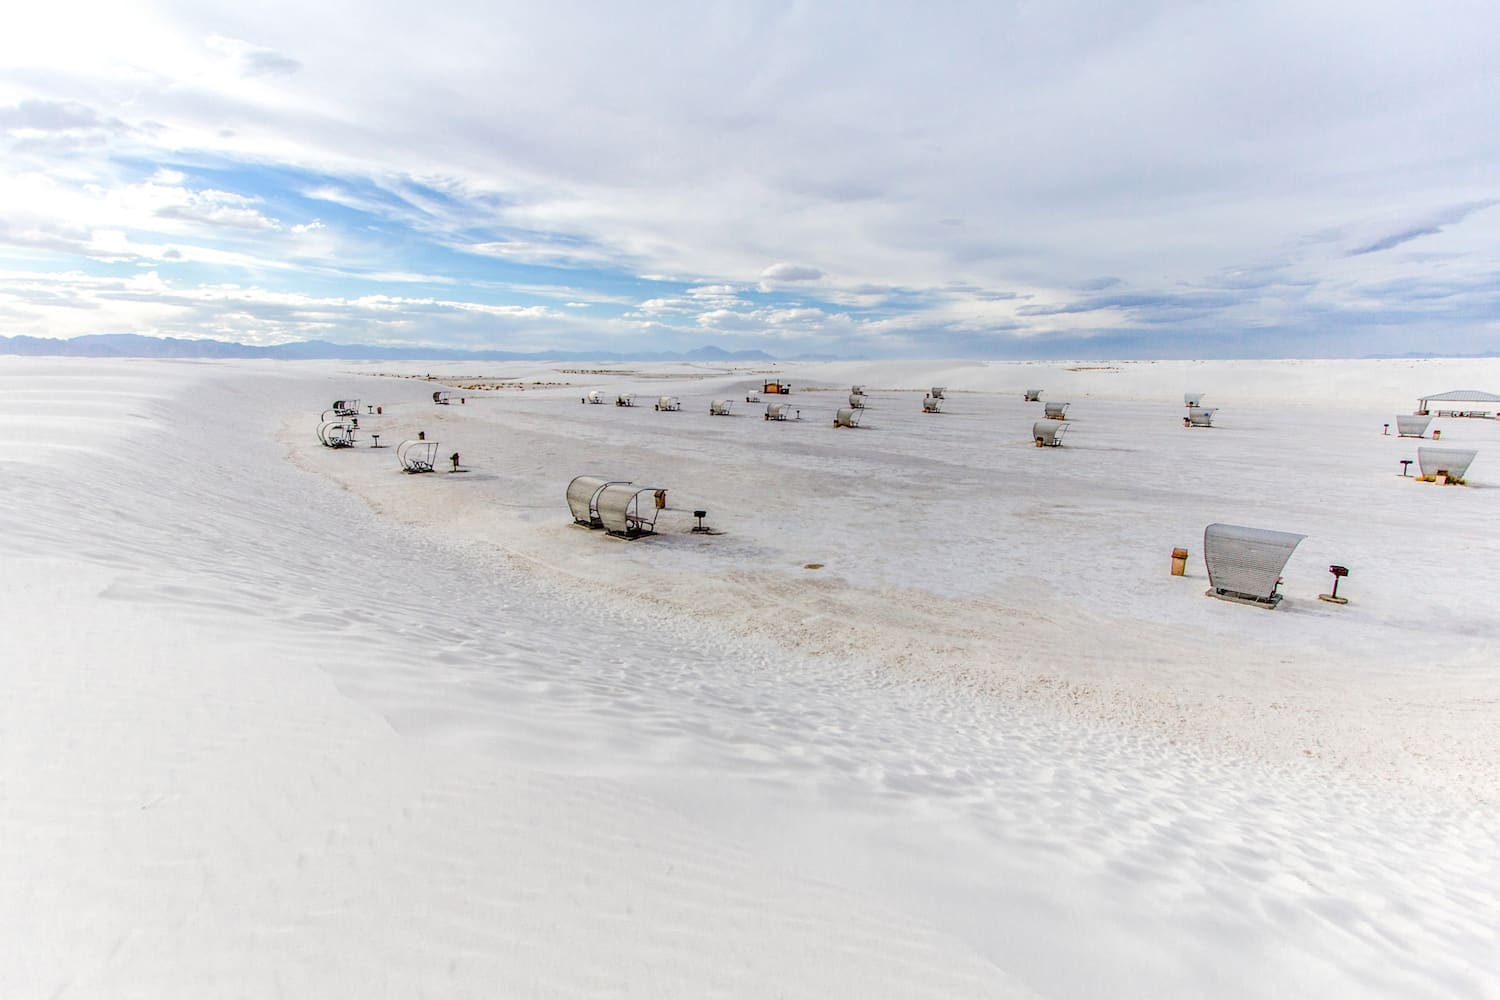 Massive sand dune in the White Sands National Monument in New Mexico surround the National Park picnic area. The National Park features the largest gypsum dune system in the world and is renowned for it's surreal other worldly like landscapes.